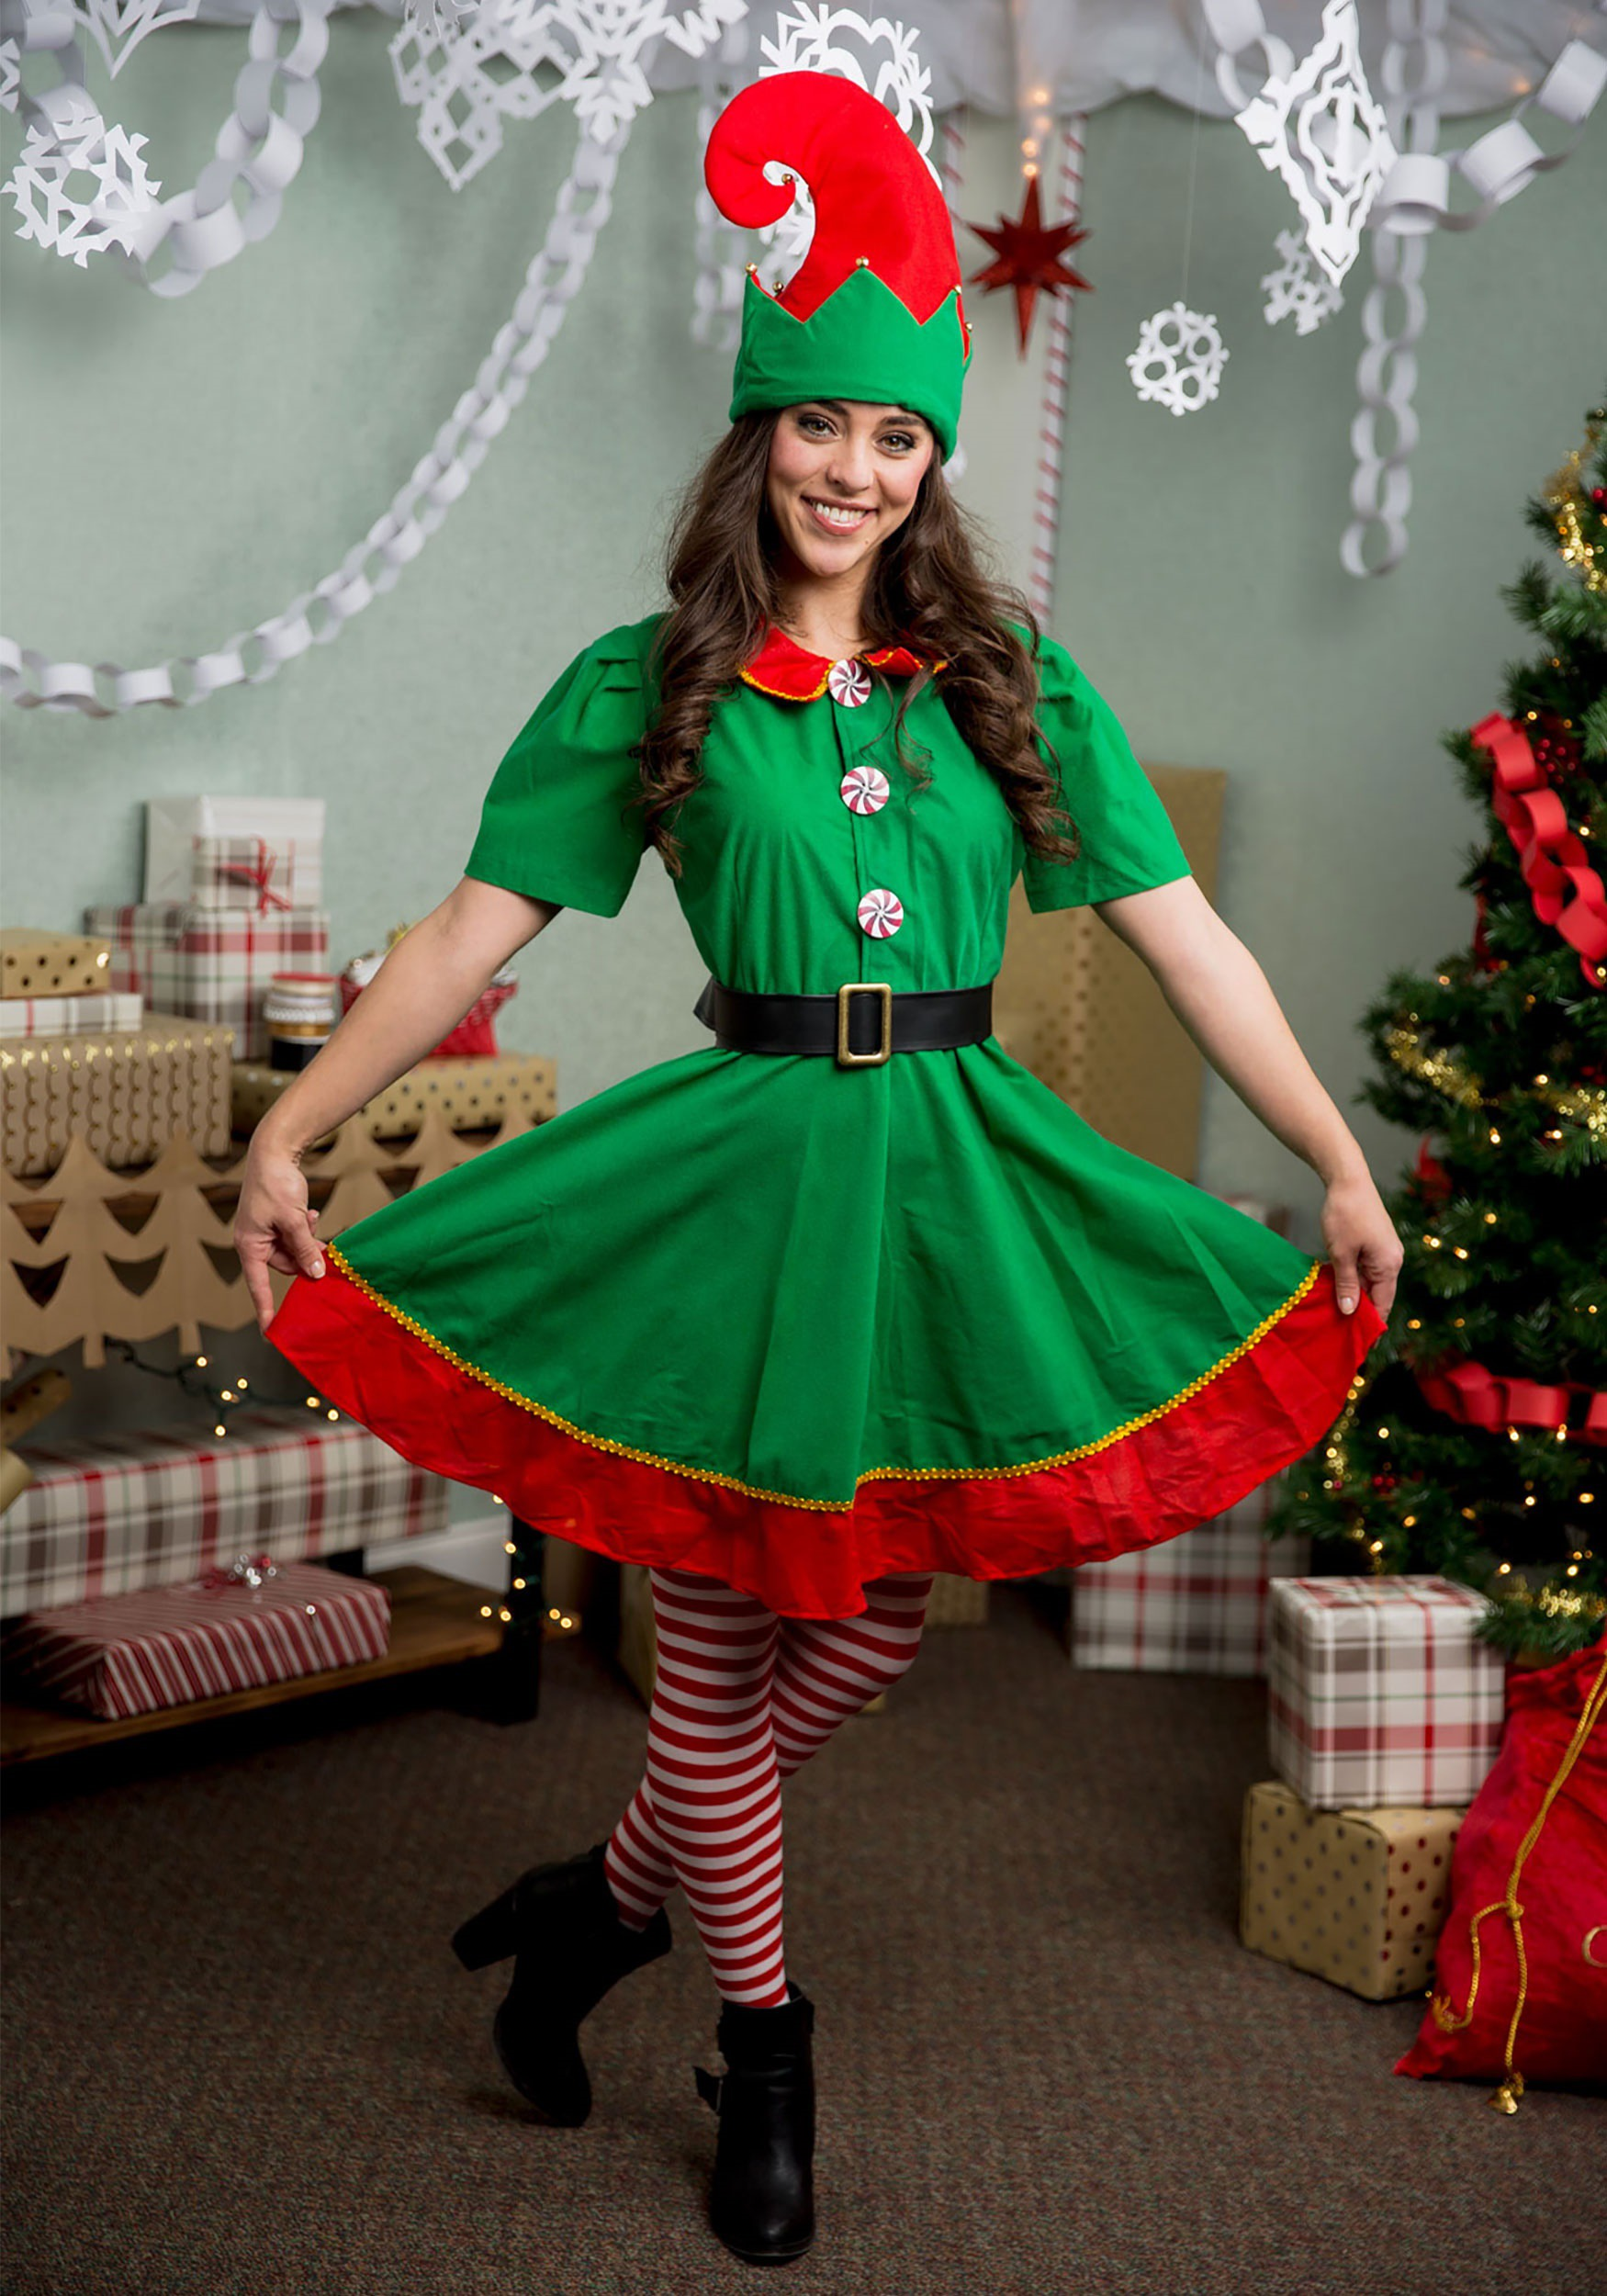 Holiday Elf Plus Size Costume Holiday Elf Plus Size Costume ...  sc 1 st  Fun.com & Holiday Elf Costume for Plus Size